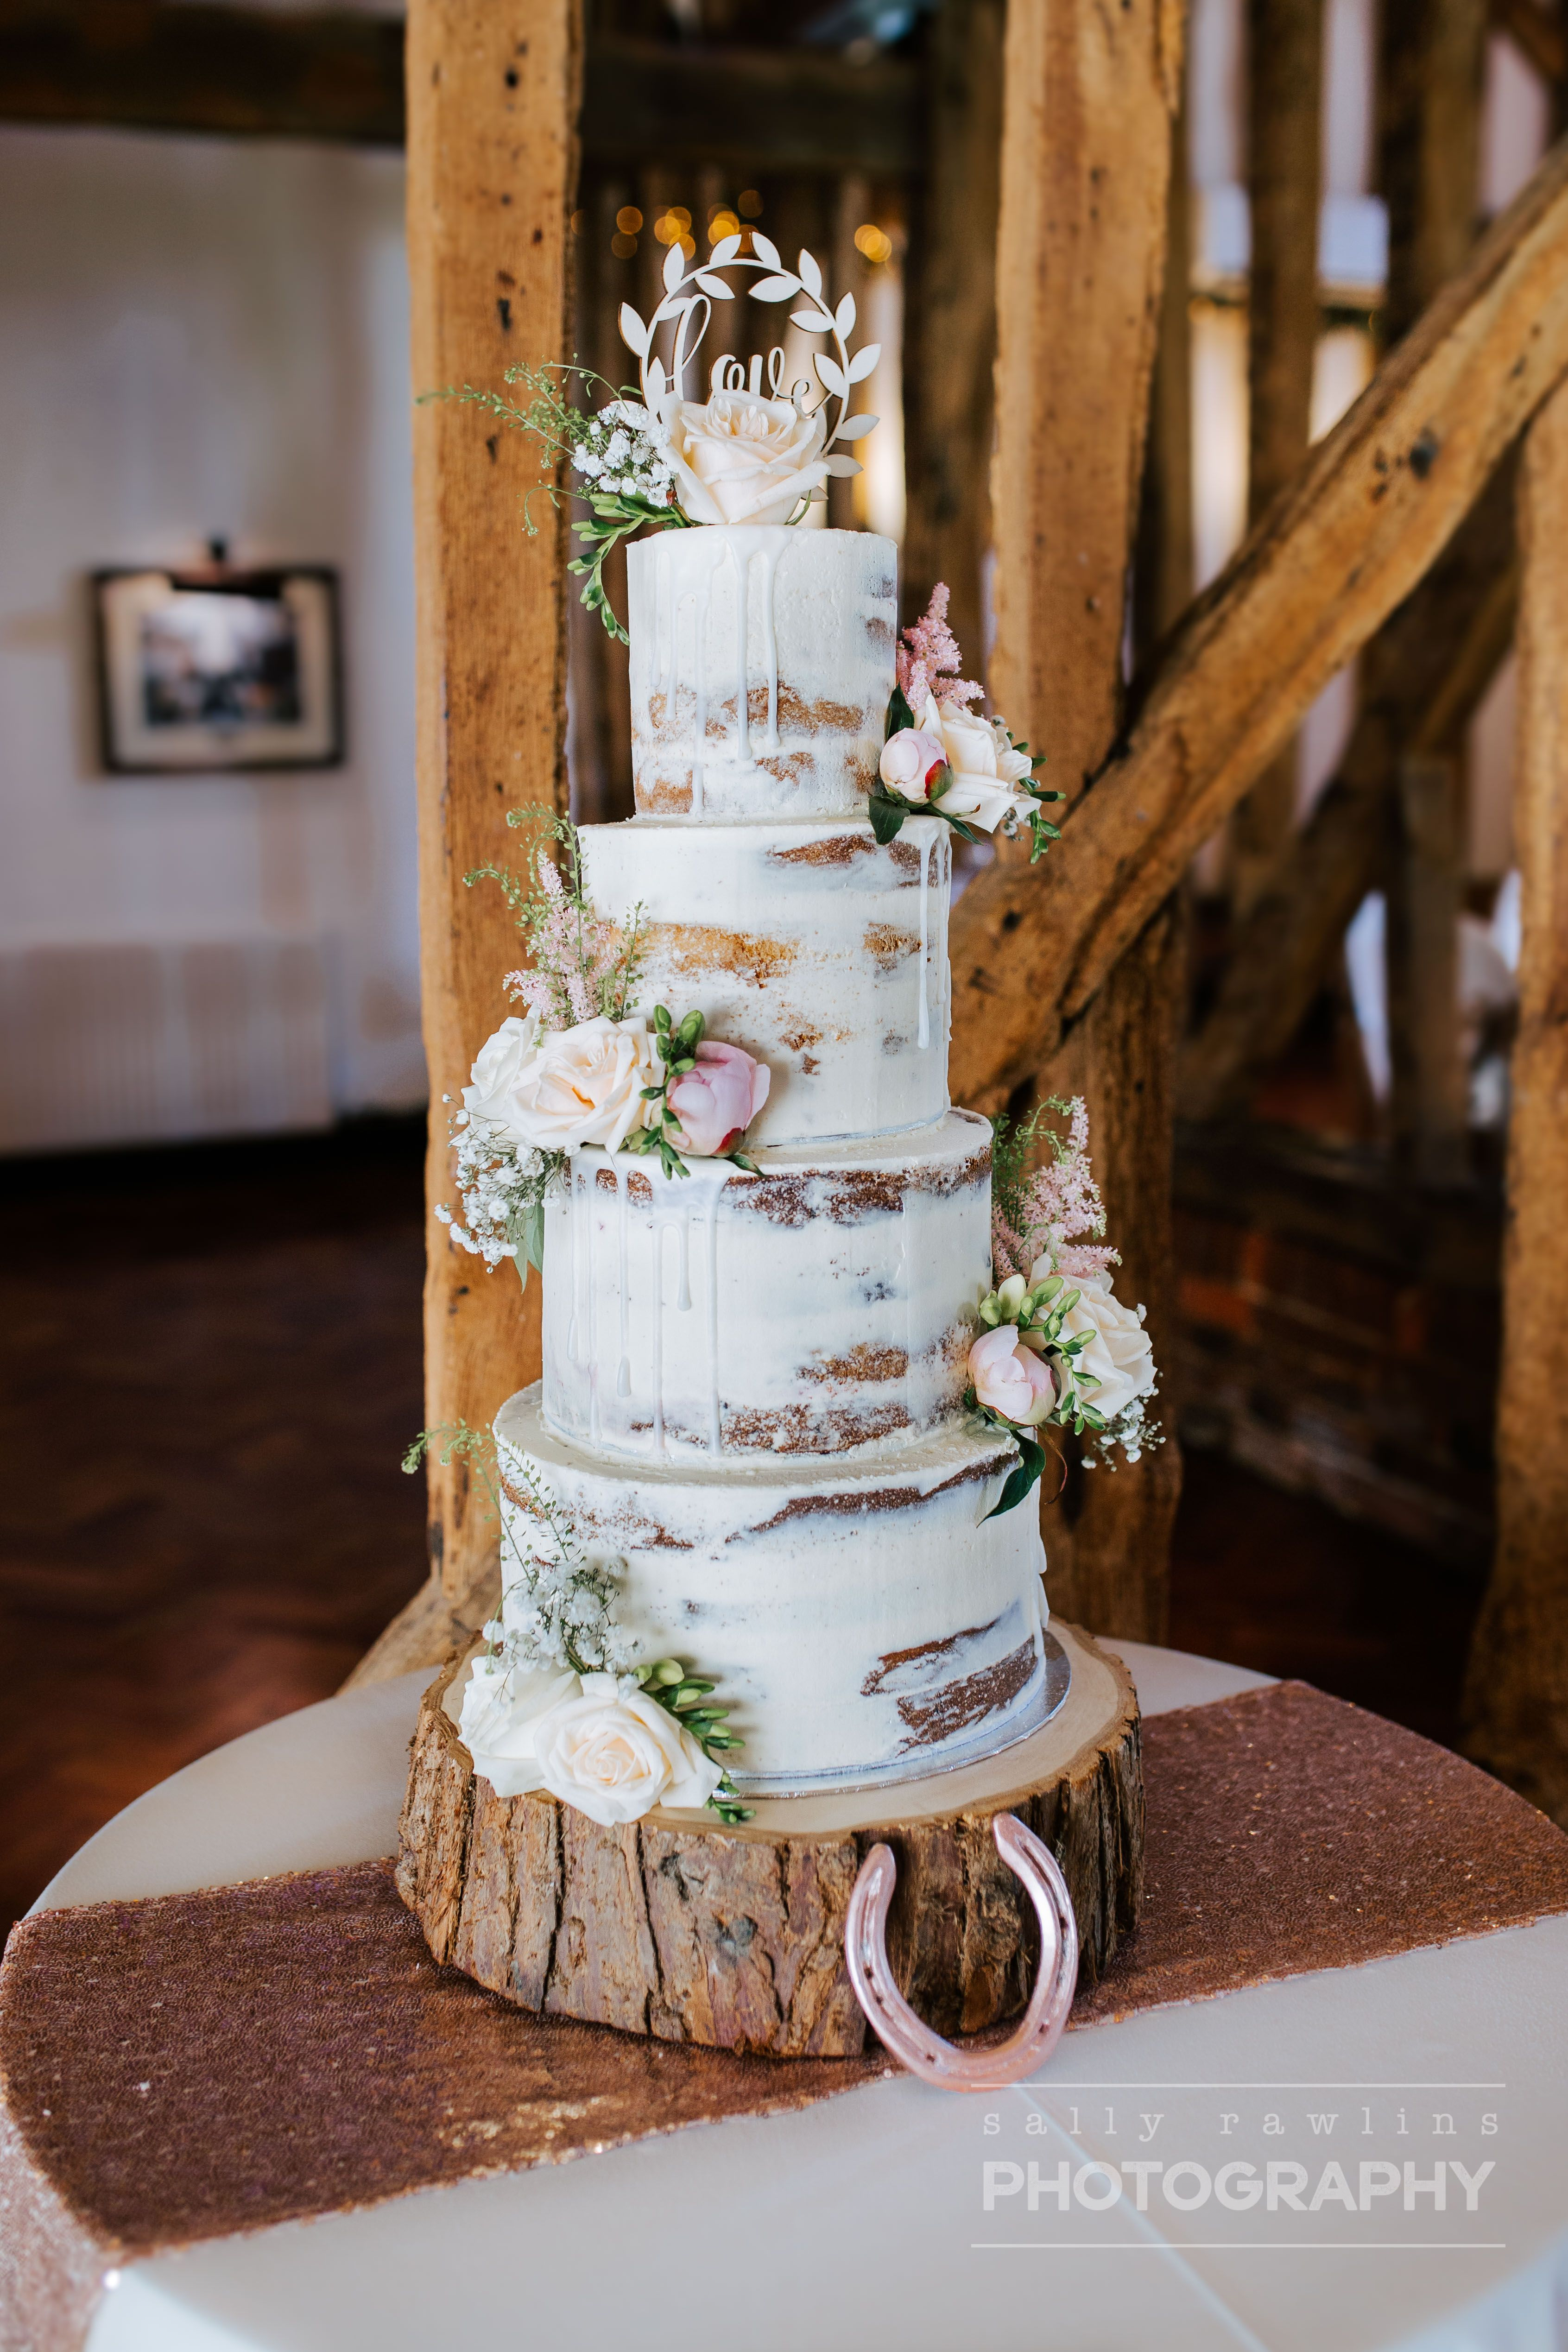 Another gorgeous seminaked rustic four tier wedding cake made by